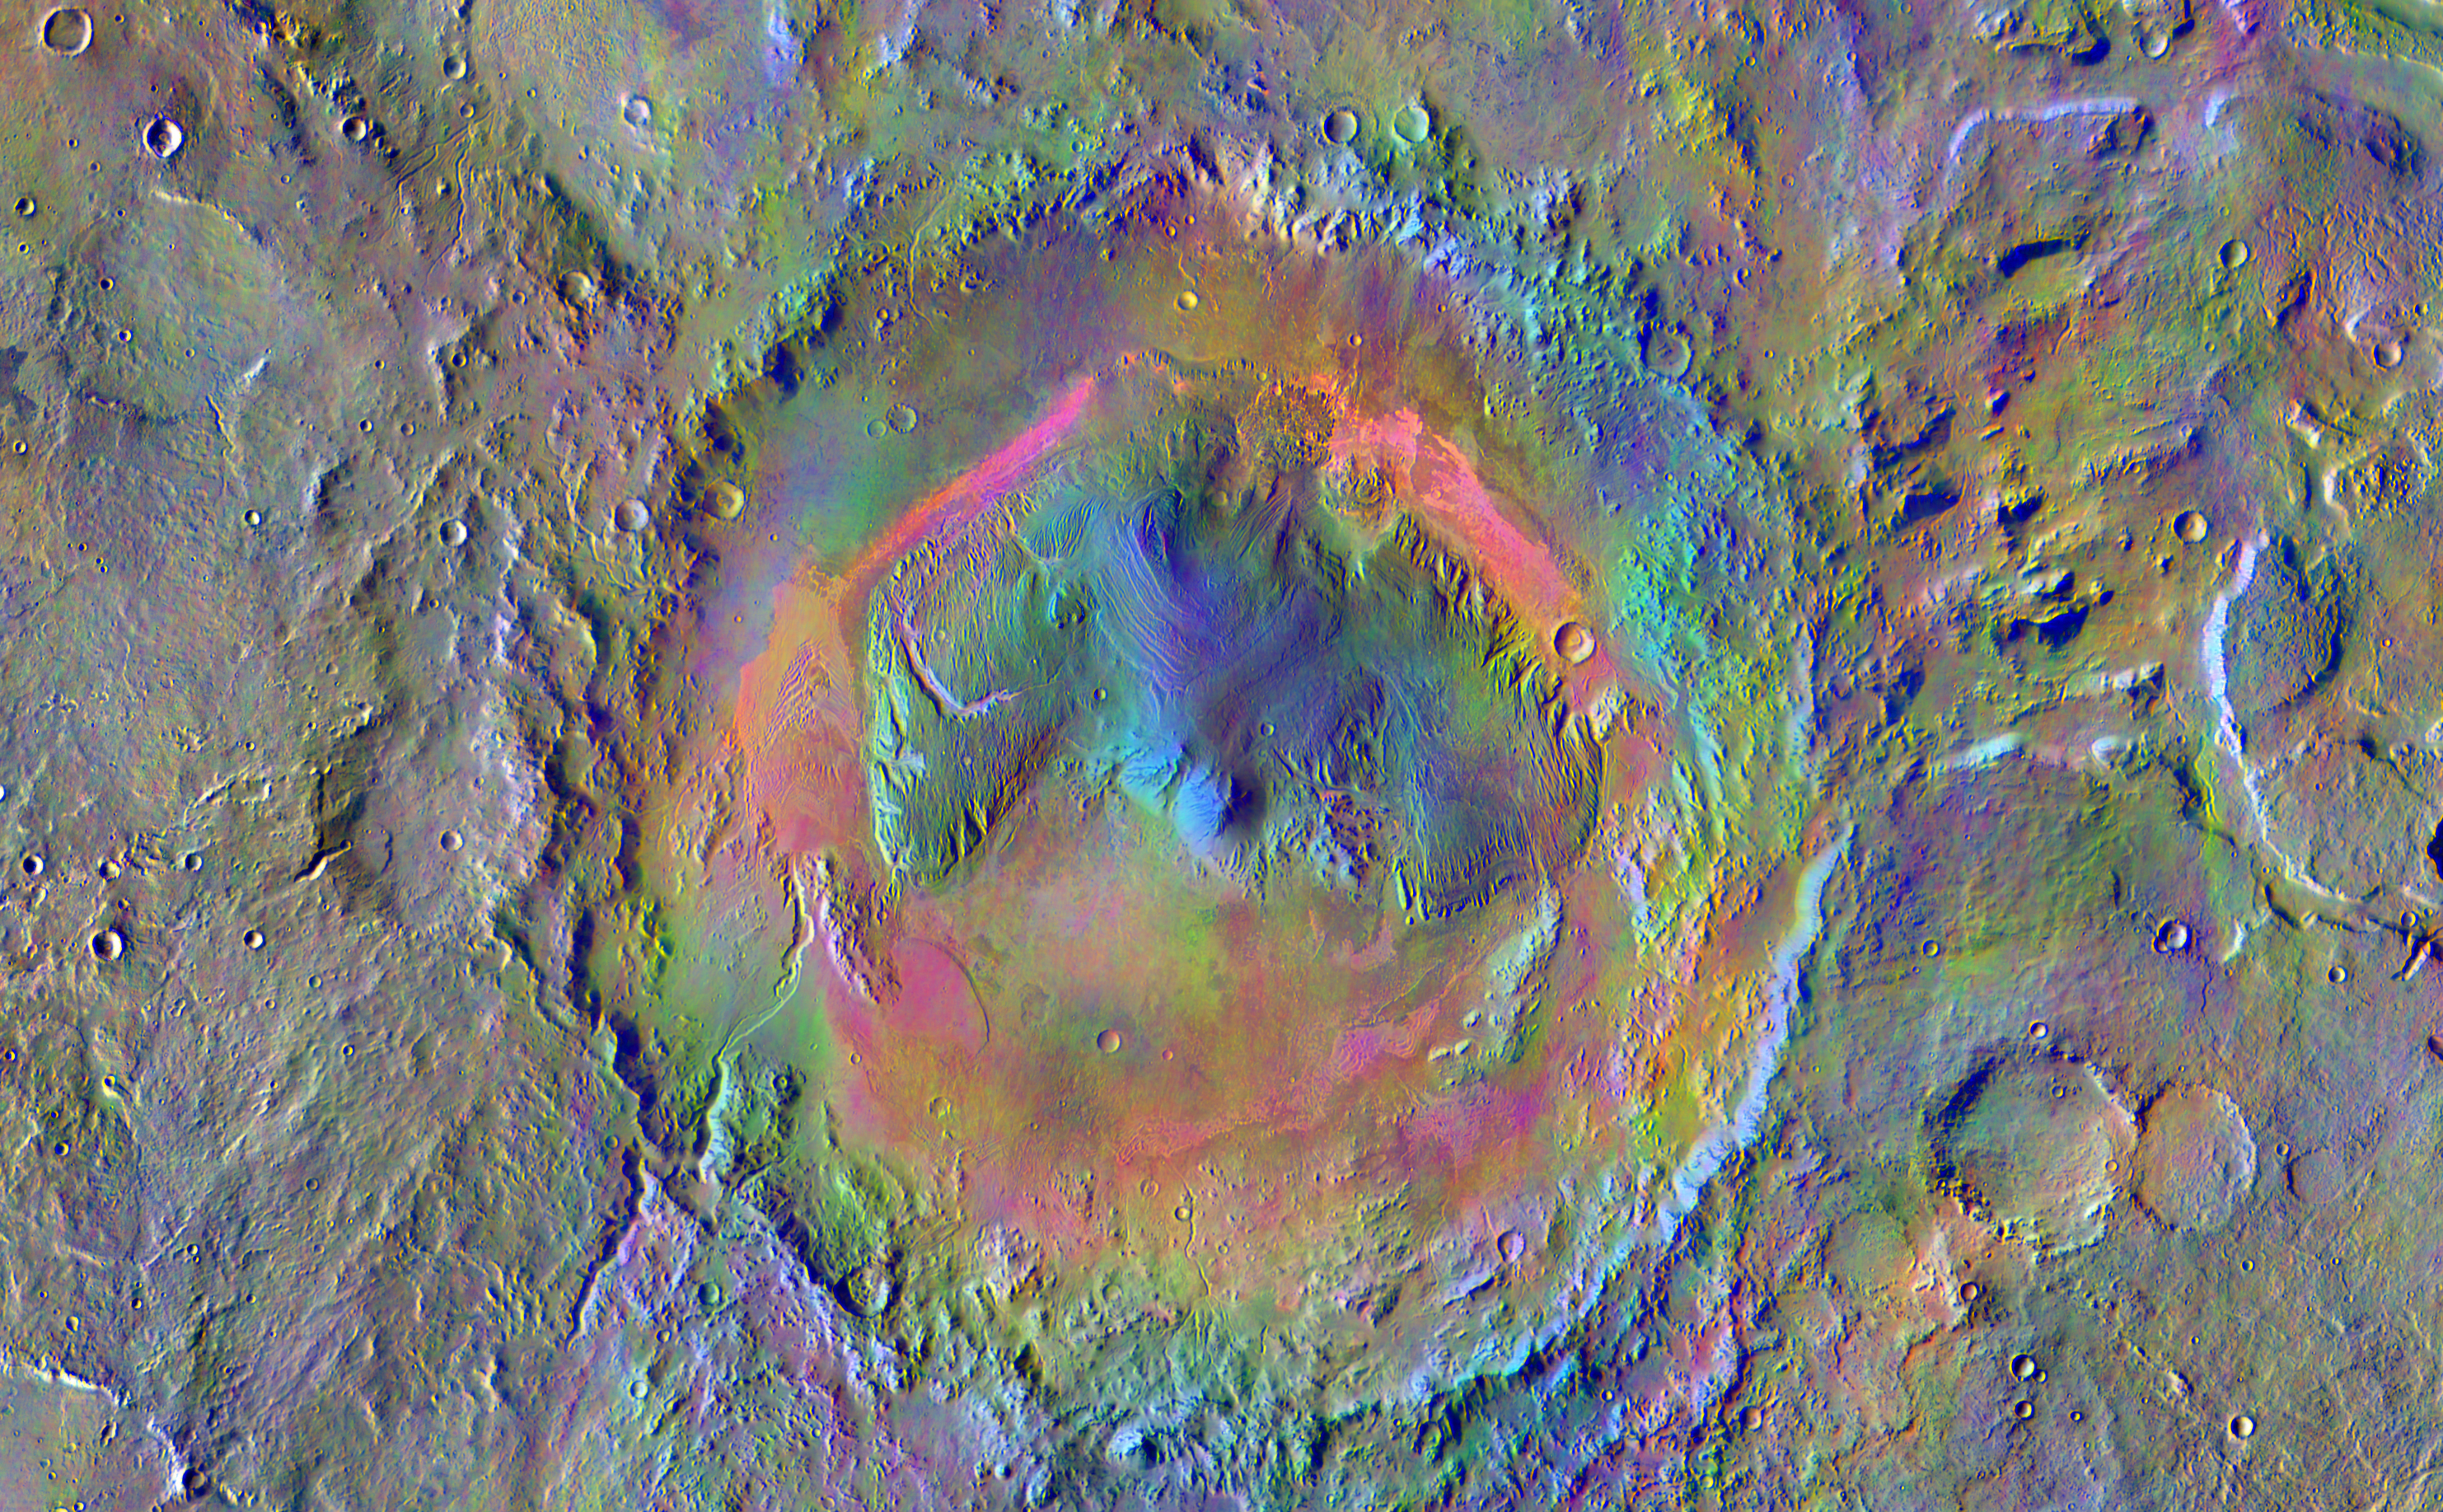 Gale Crater, home to NASA's Curiosity Mars rover, shows a new face in this image made using data from the THEMIS camera on NASA's Mars Odyssey orbiter.